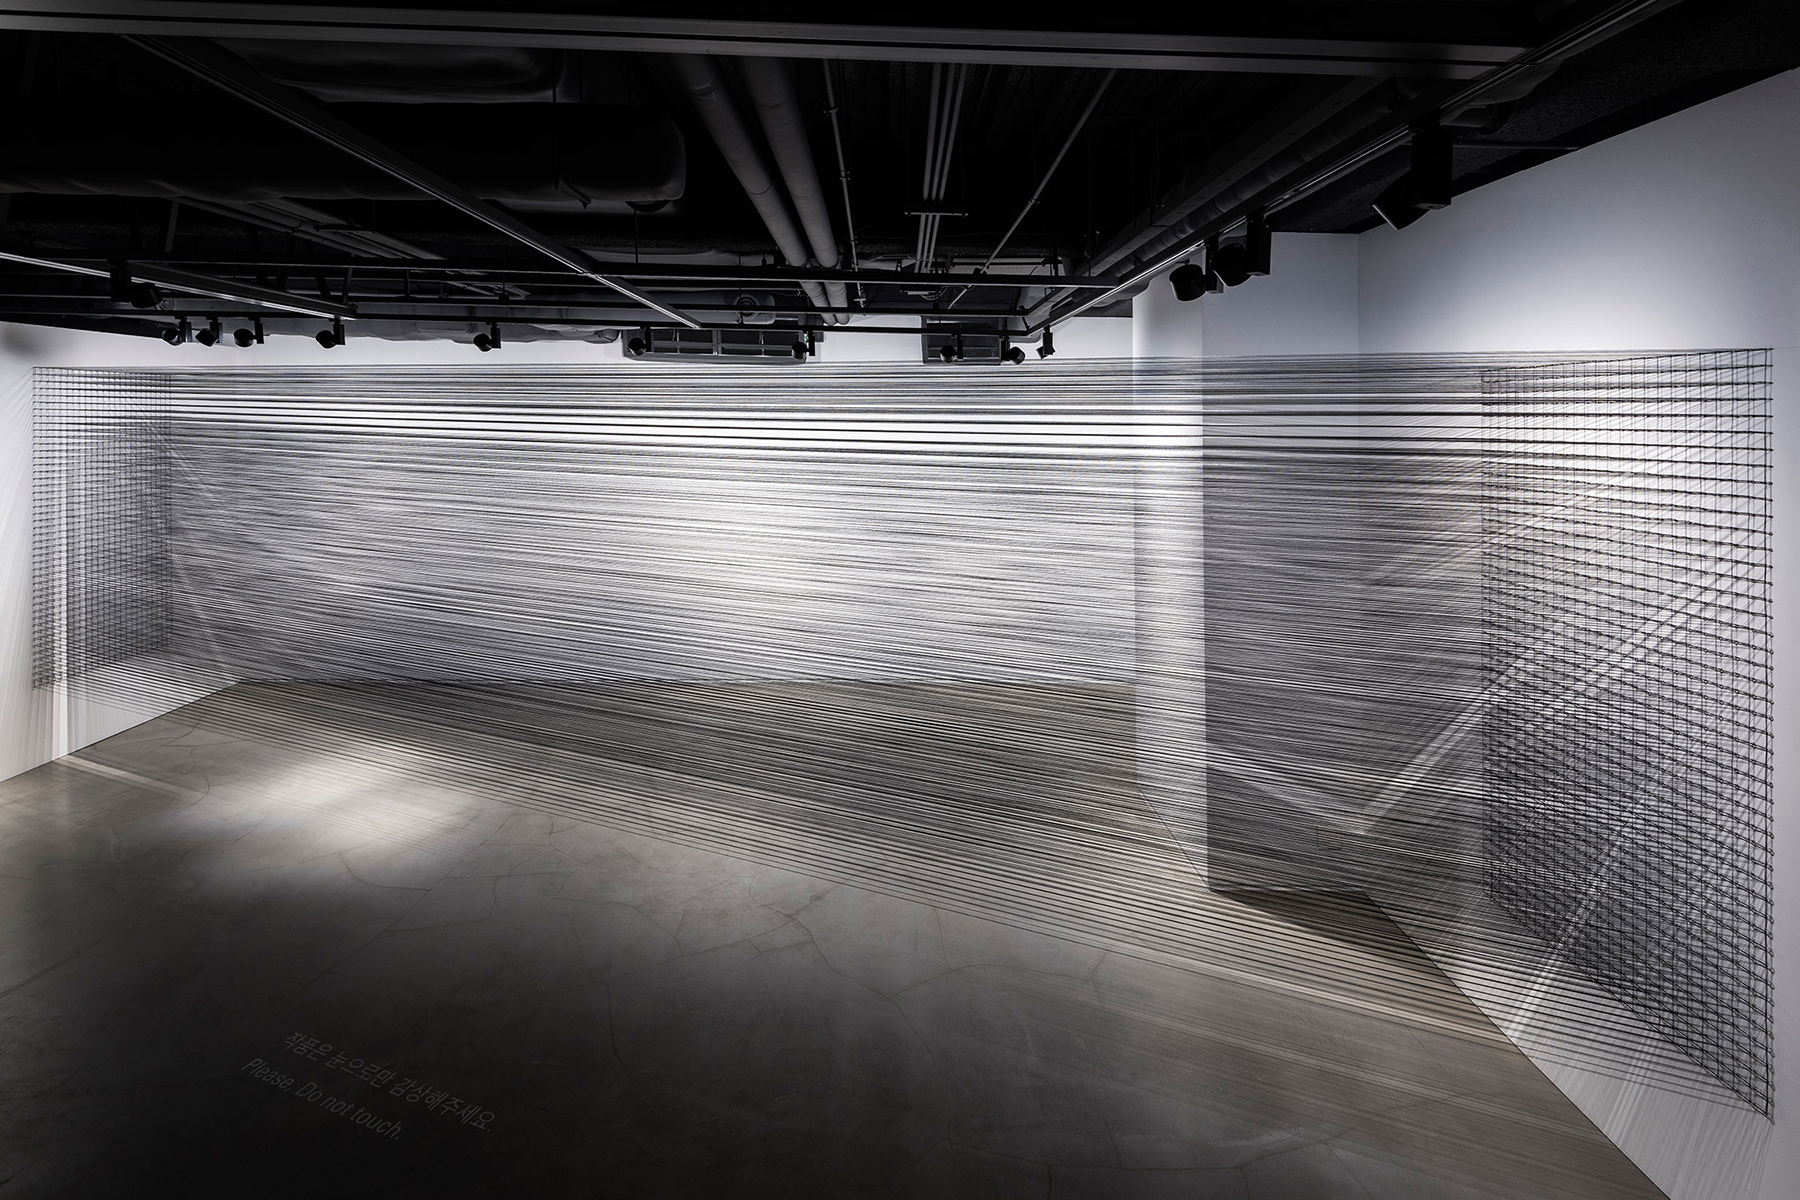 06.EunHyeKang_Flexible Tension_Cotton yarn_Site-specific installation_2018.jpg